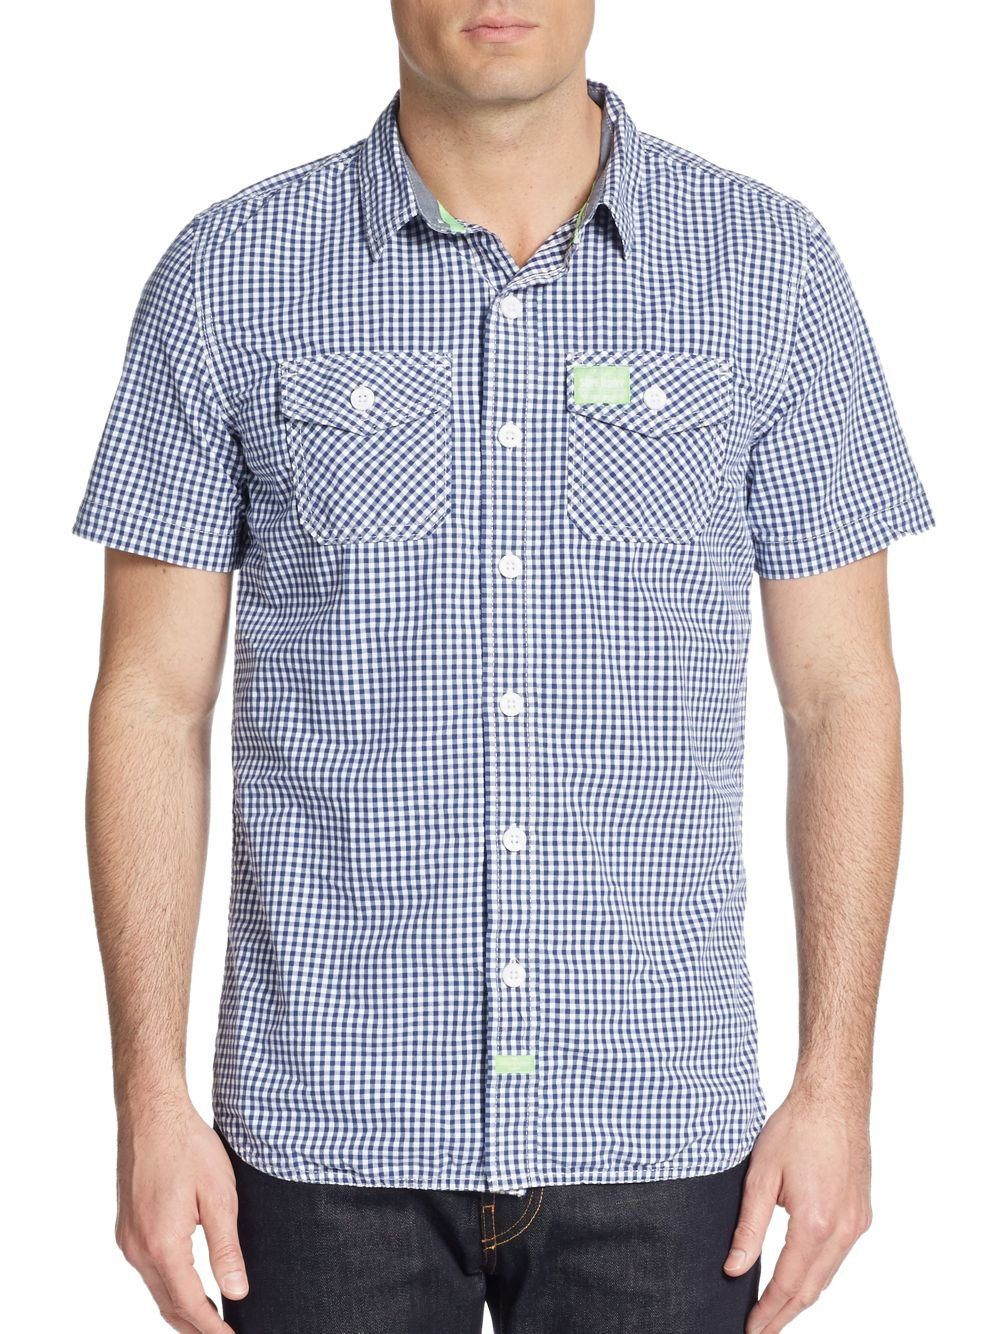 SUPERDRY MEN'S WASHBASKET GINGHAM BOCA SHORT SLEEVE SHIRT BLUE - CIRCA75 MENSWEAR